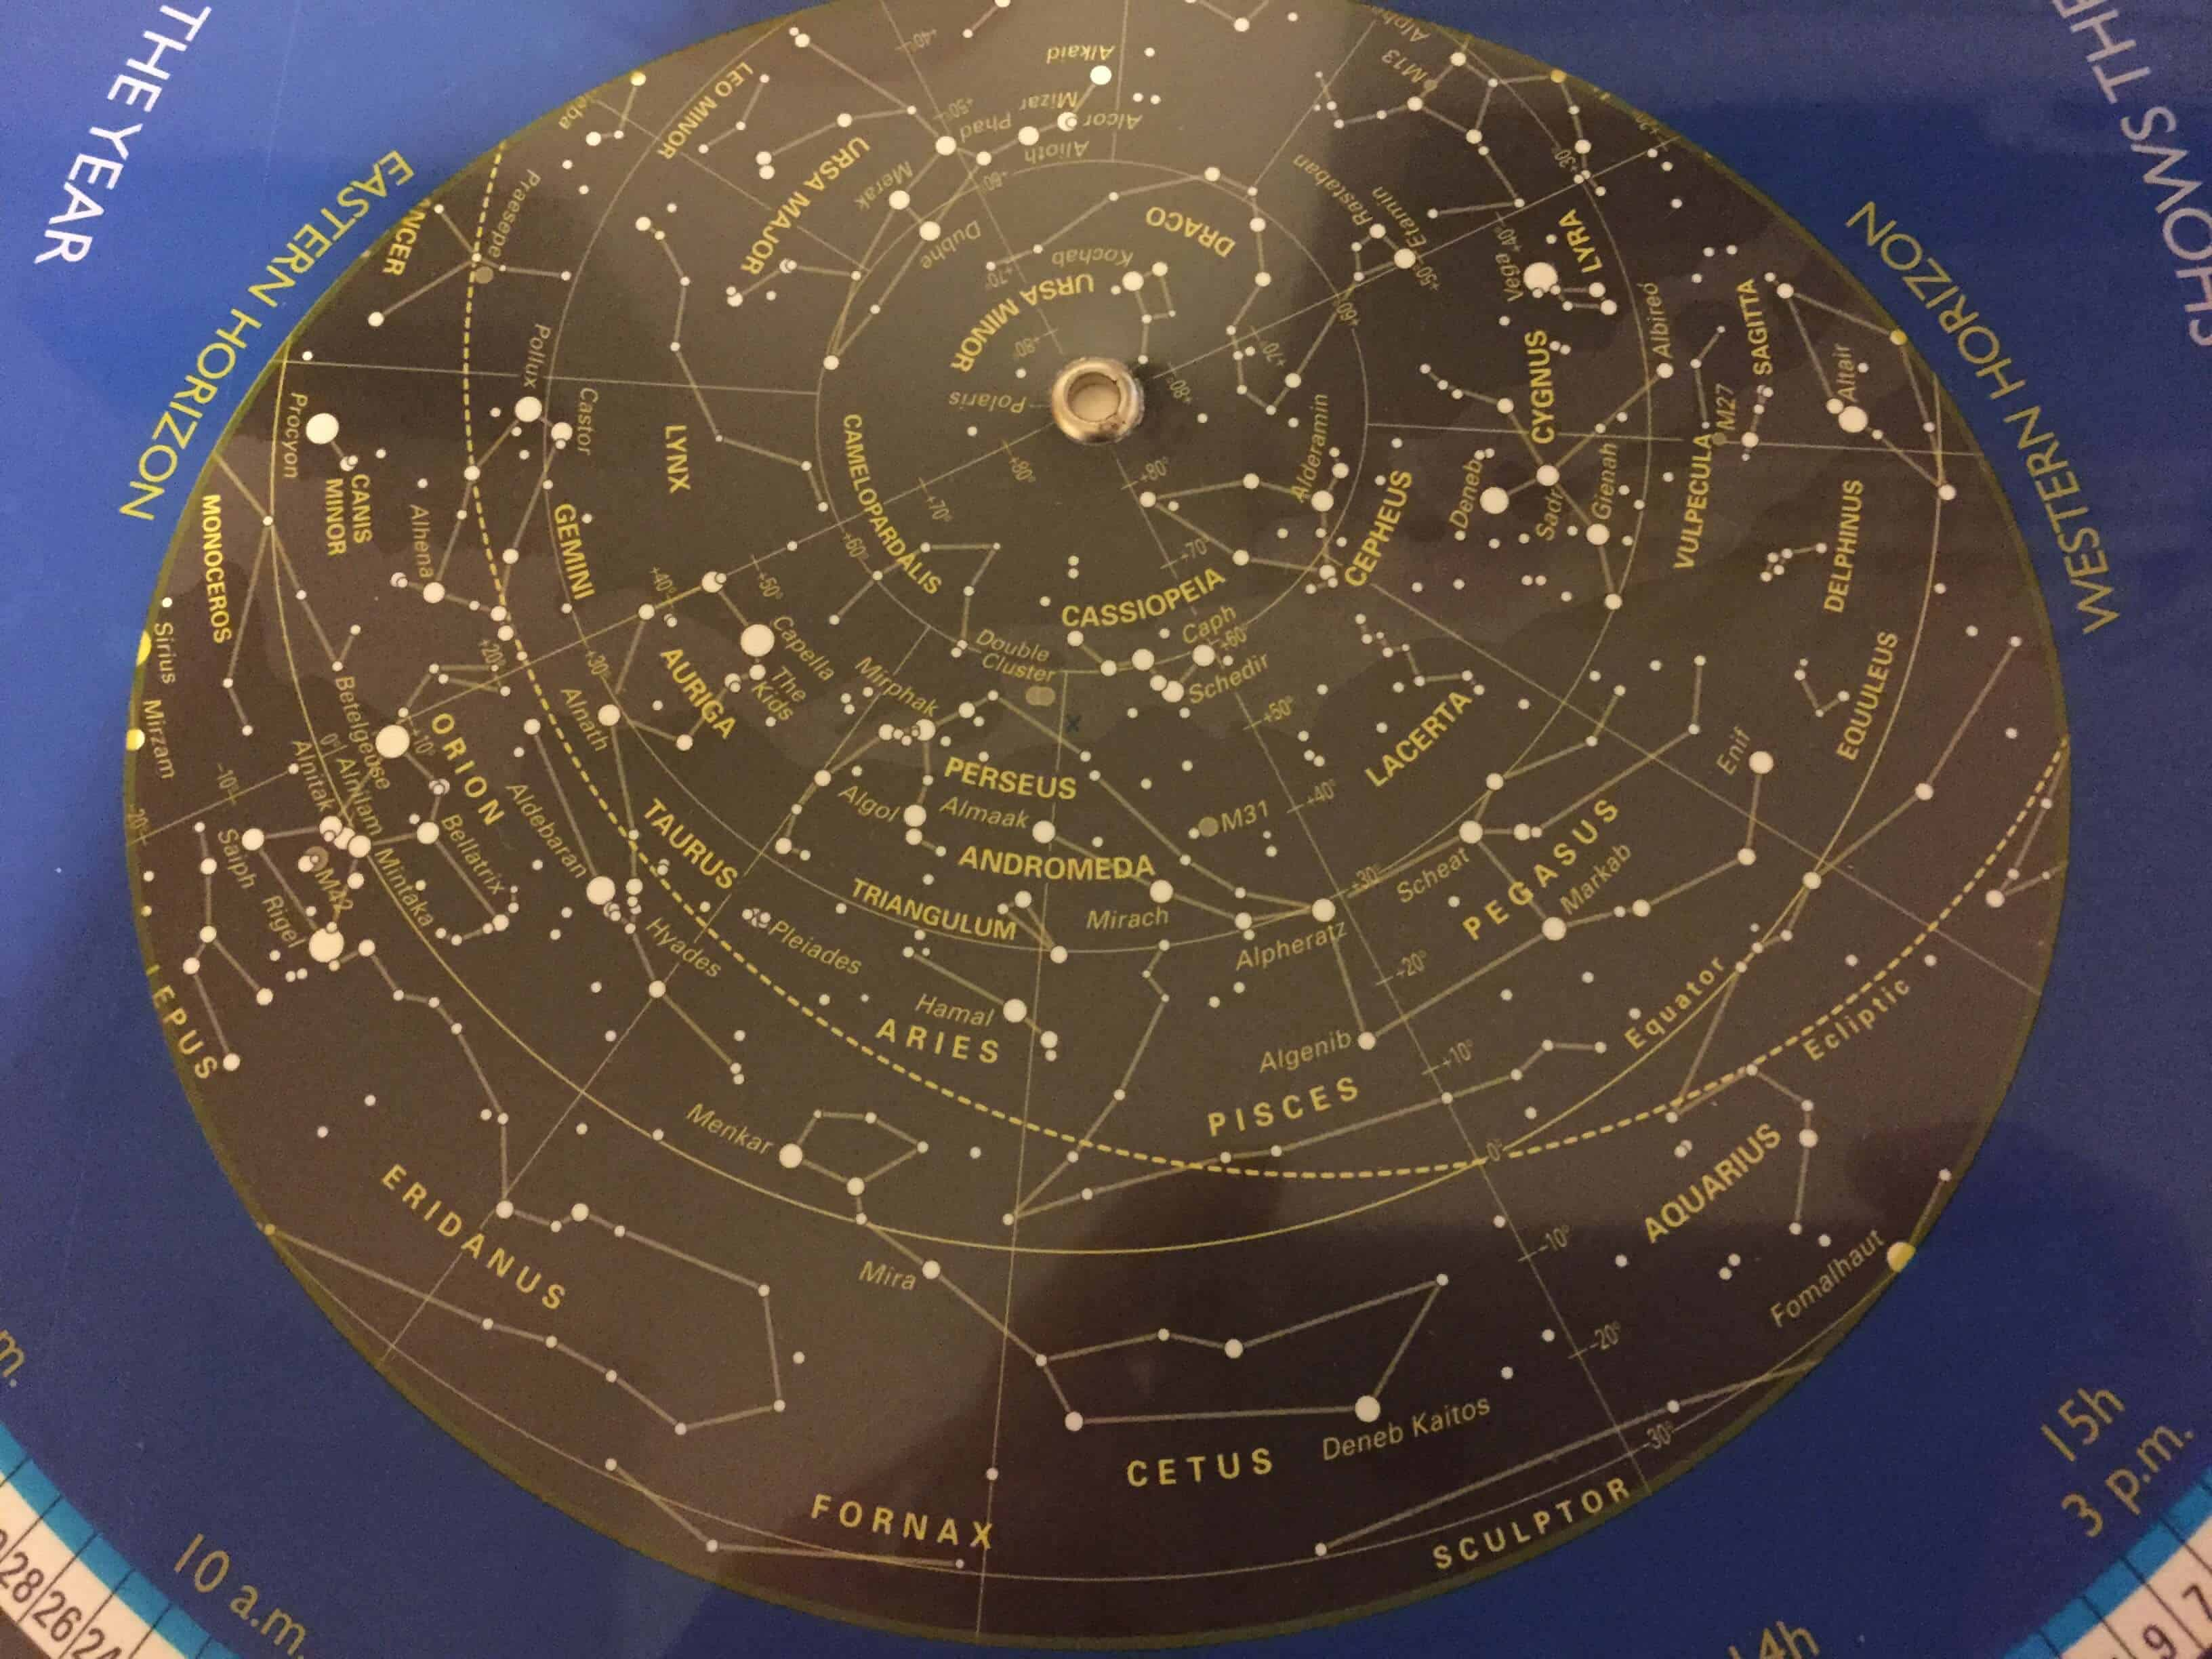 How to set a planisphere for today's date